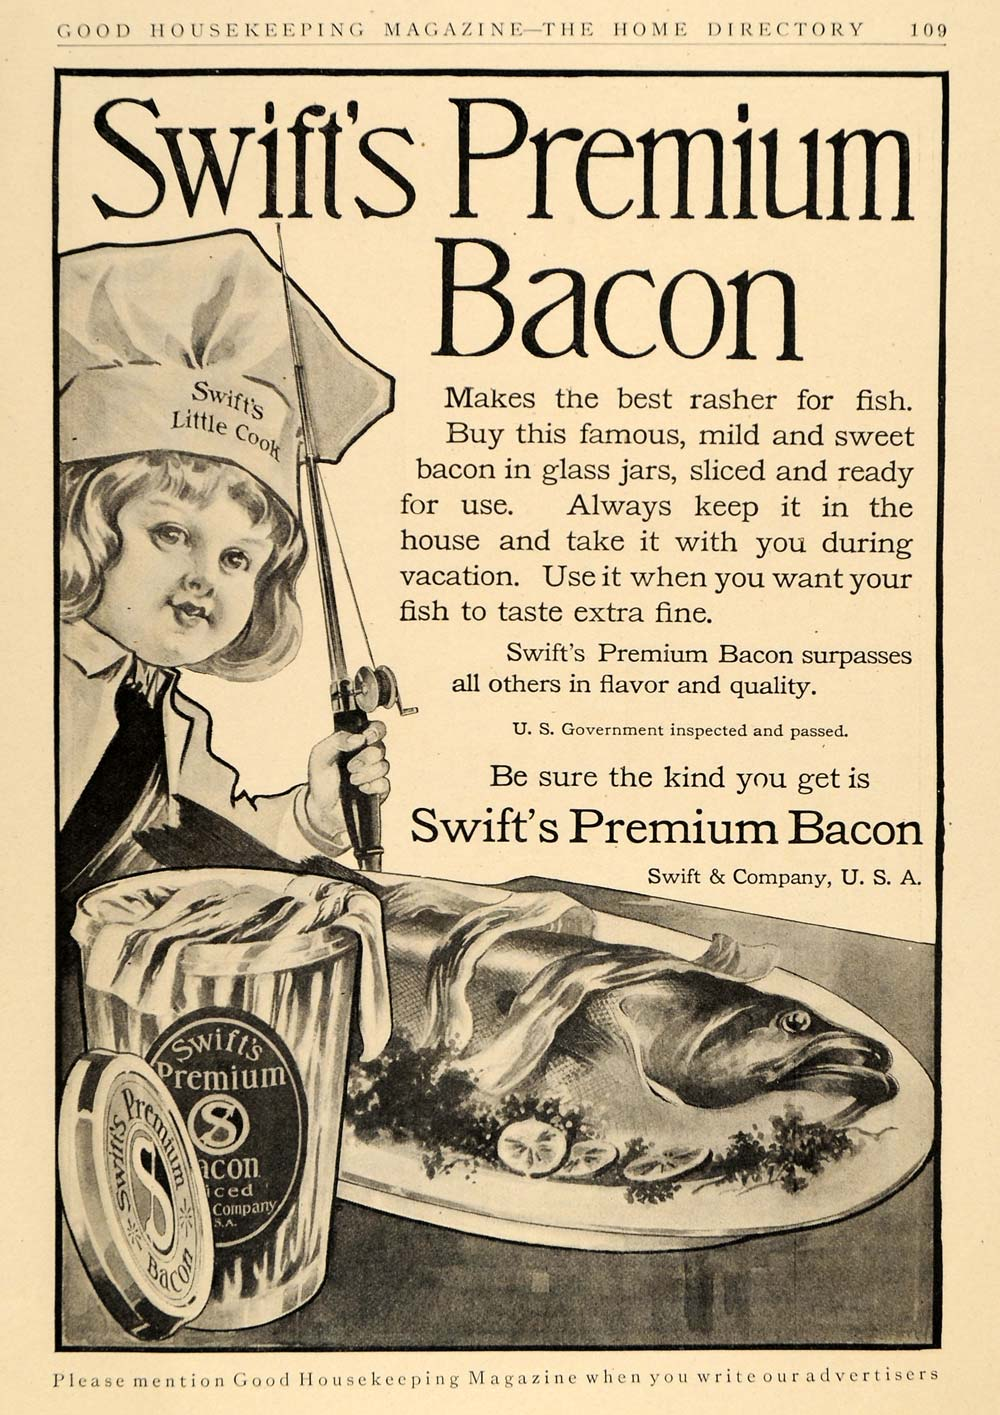 1911 Ad Swift's Premium Bacon Glass Jar Fish Dish Rod - ORIGINAL ADVERTISING GH2